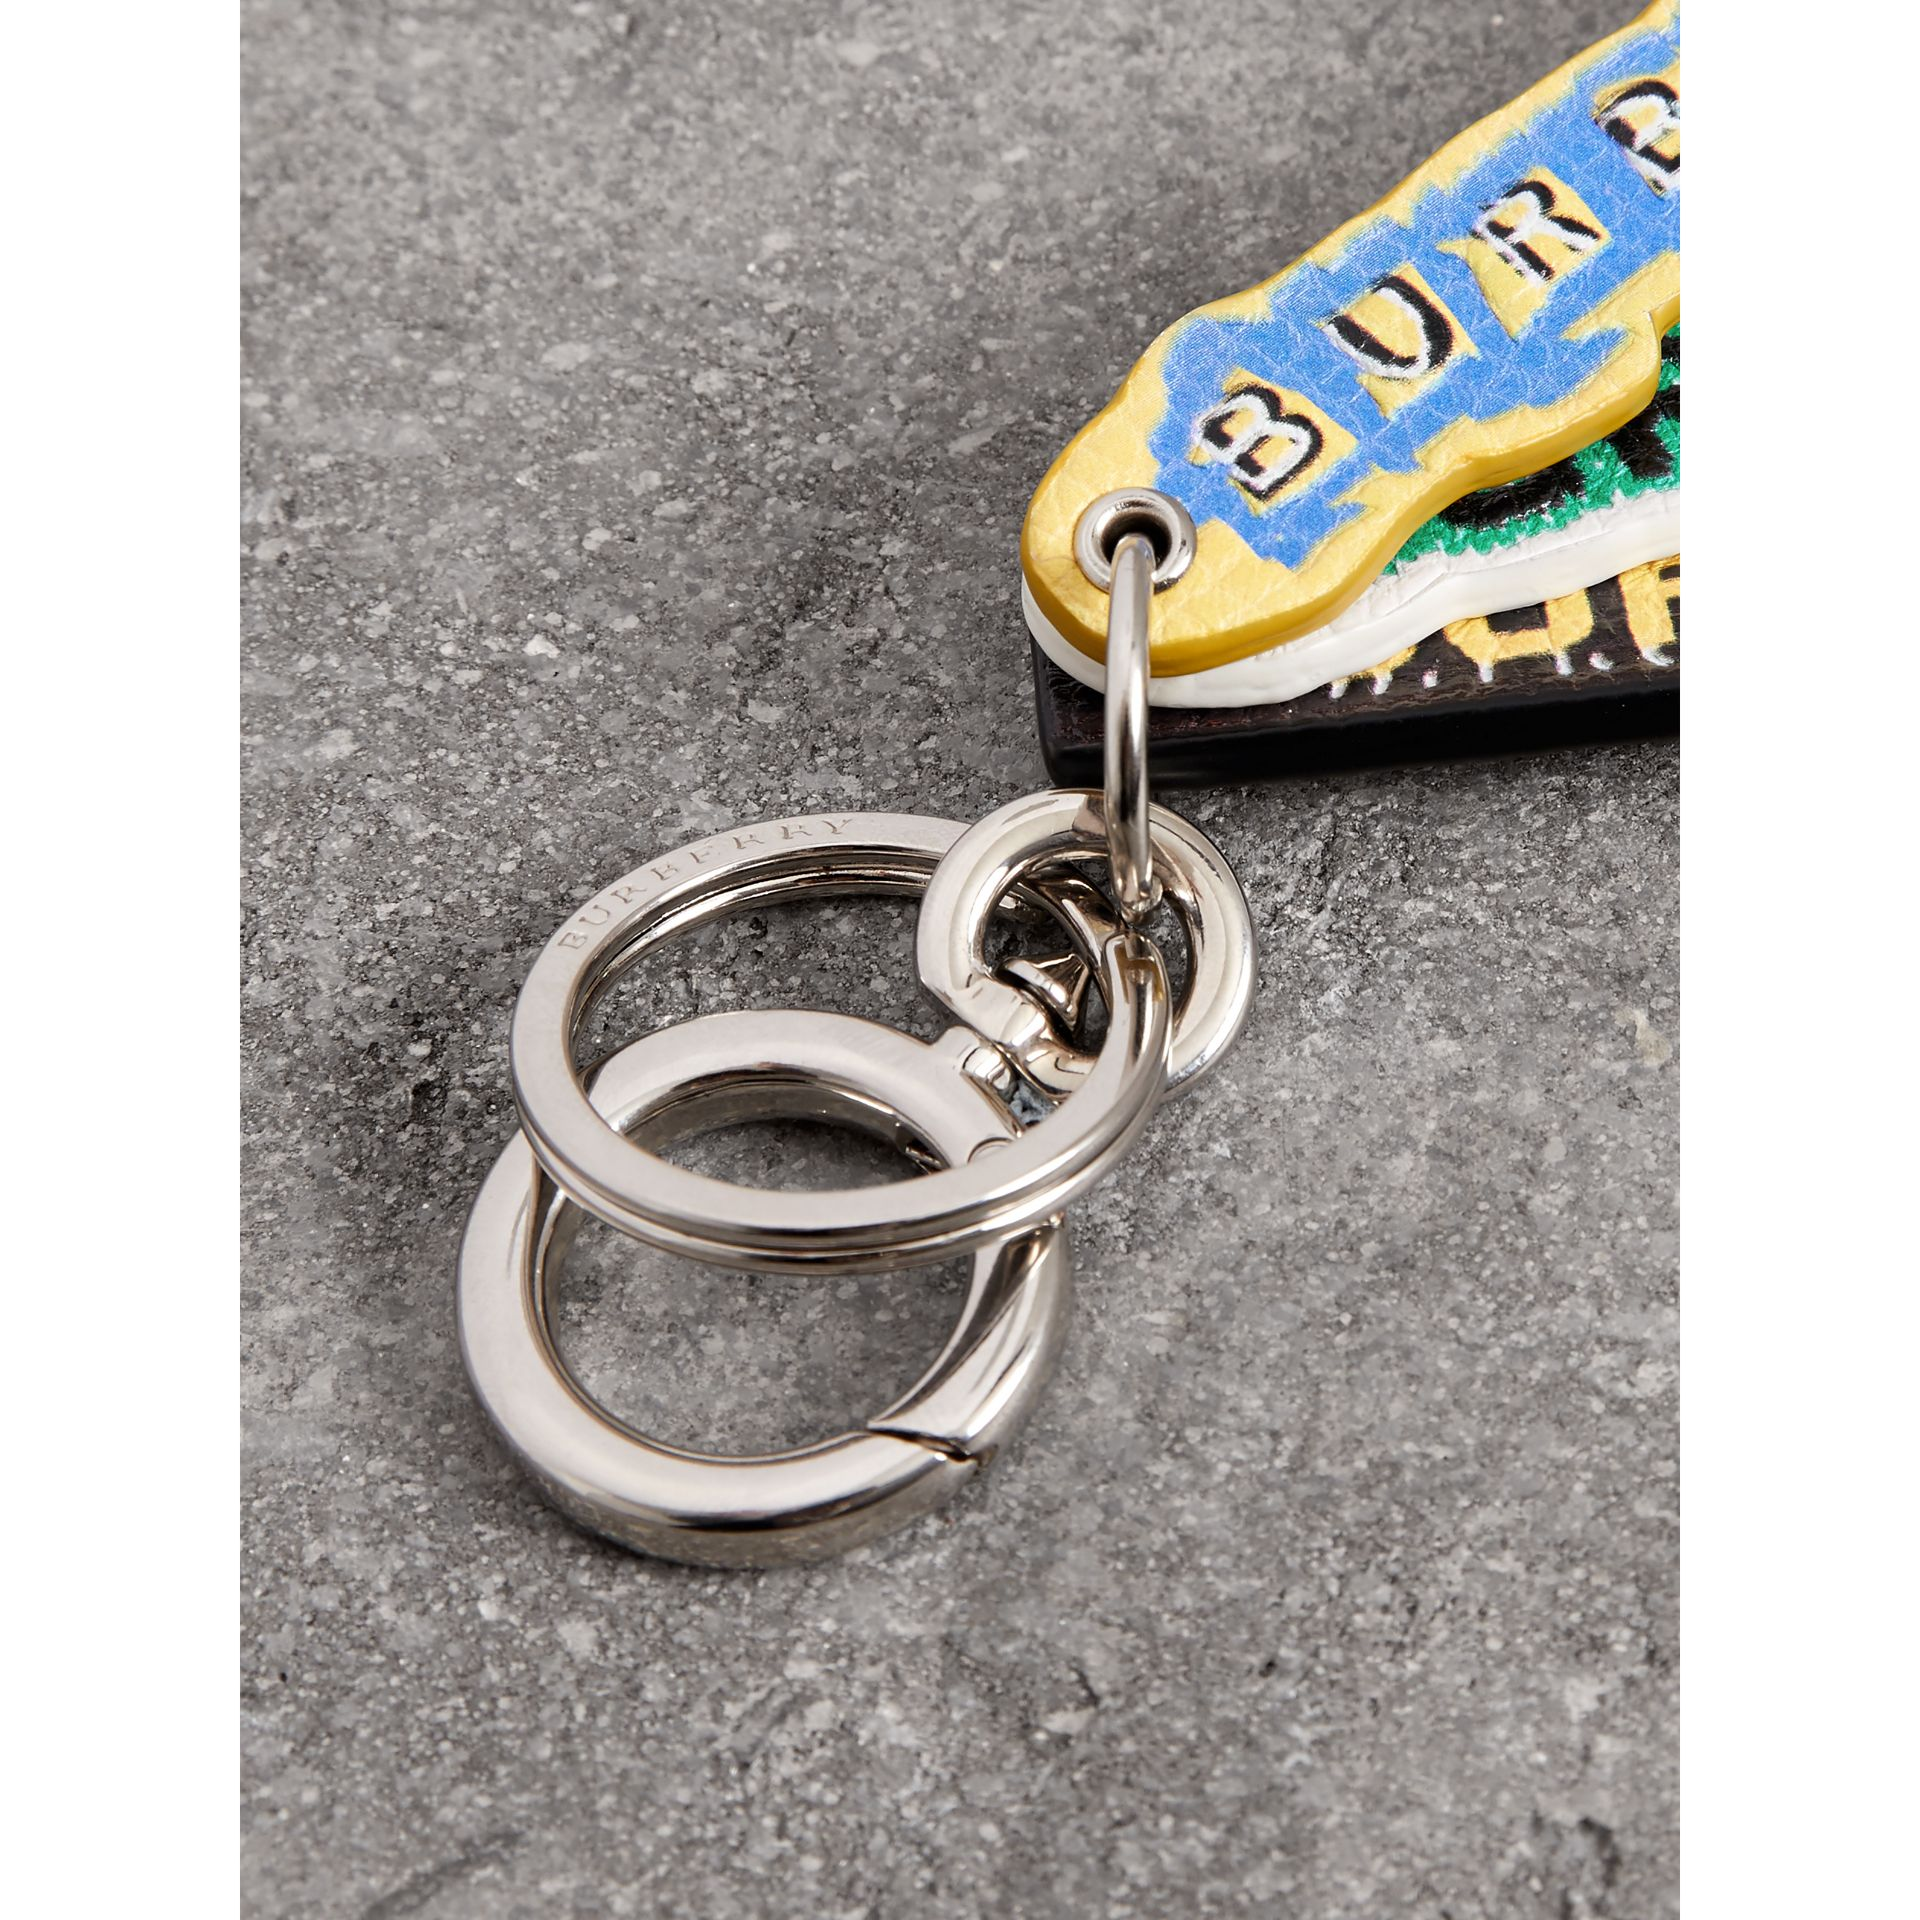 Tag Print Leather Key Ring in Multicolour | Burberry Australia - gallery image 1